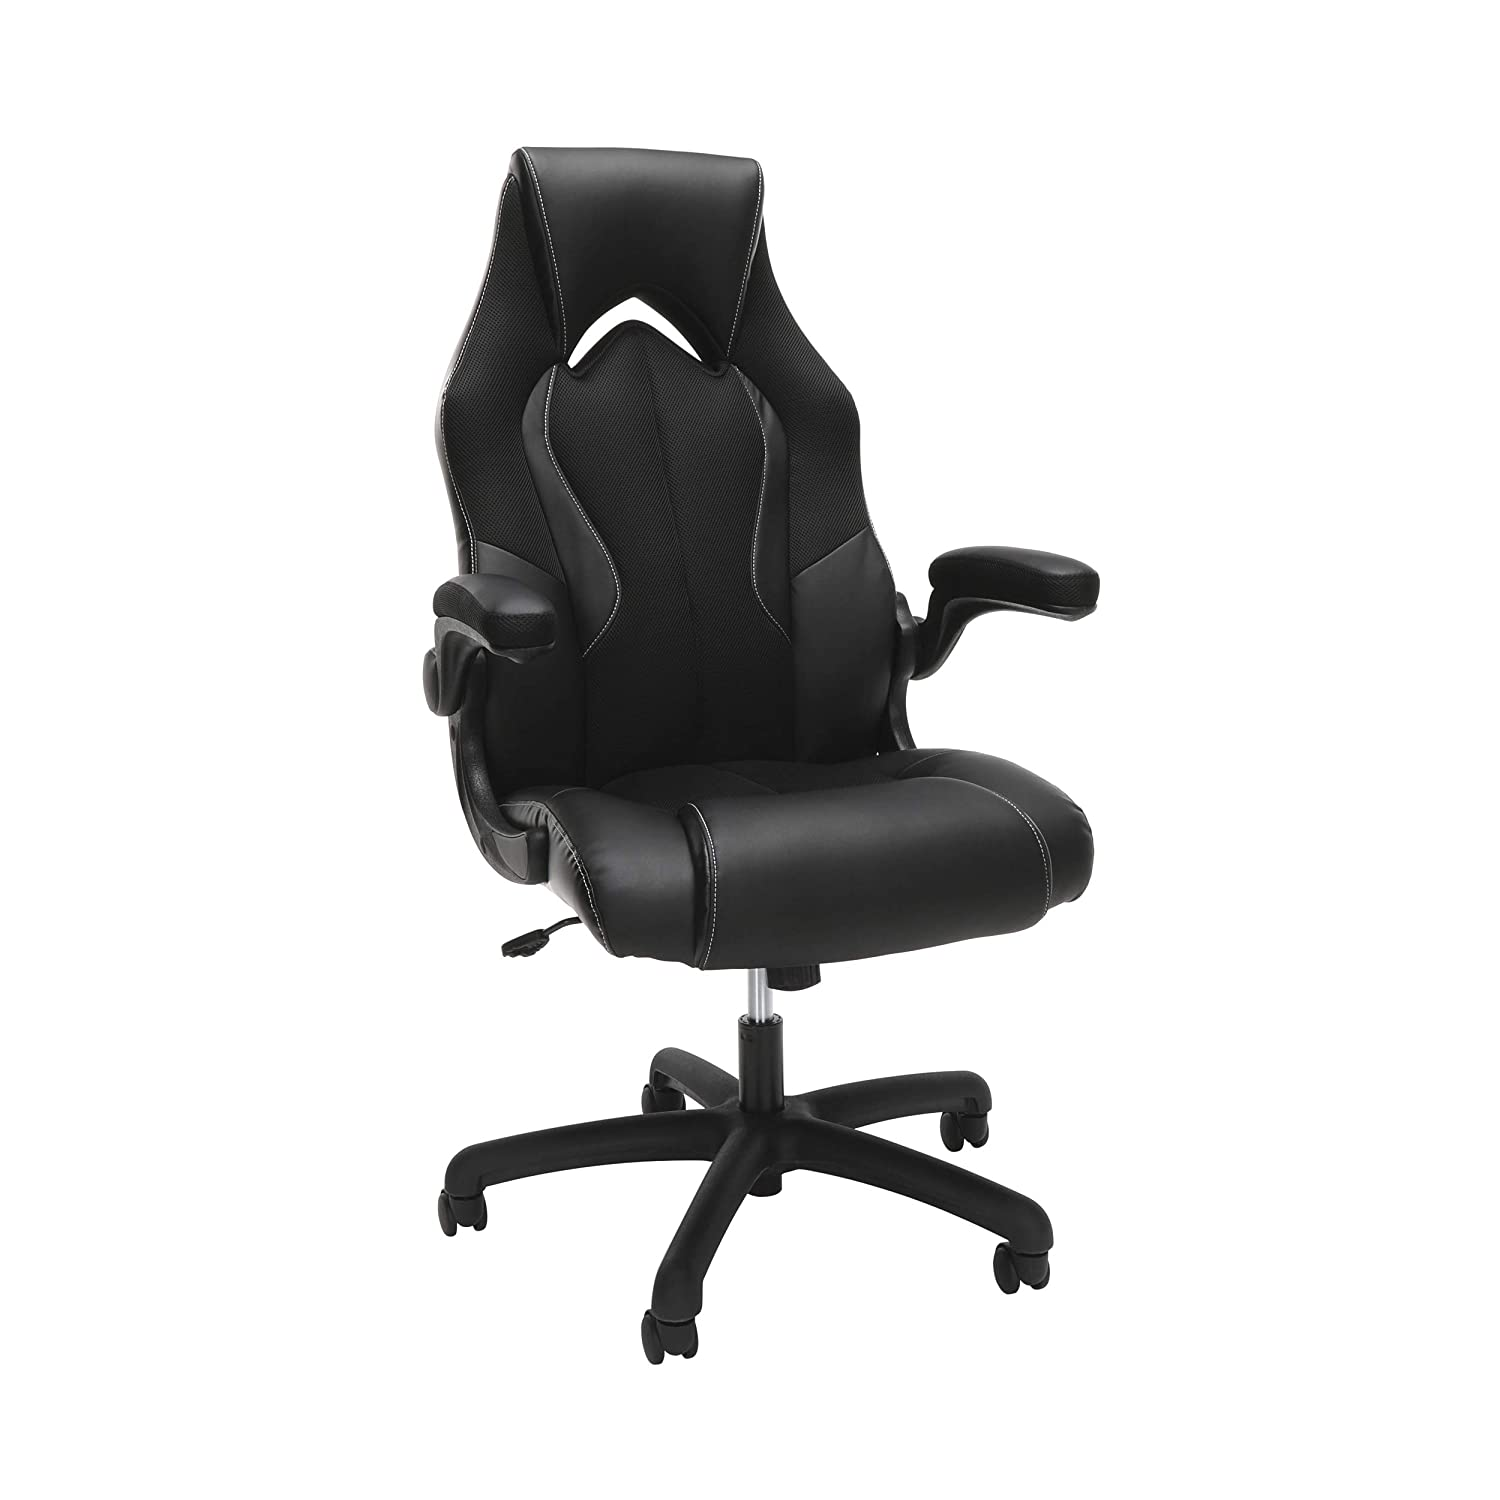 OFM Essentials Collection High-Back Racing Style Bonded Leather Gaming Chair, in Black (ESS-3086-BLK)